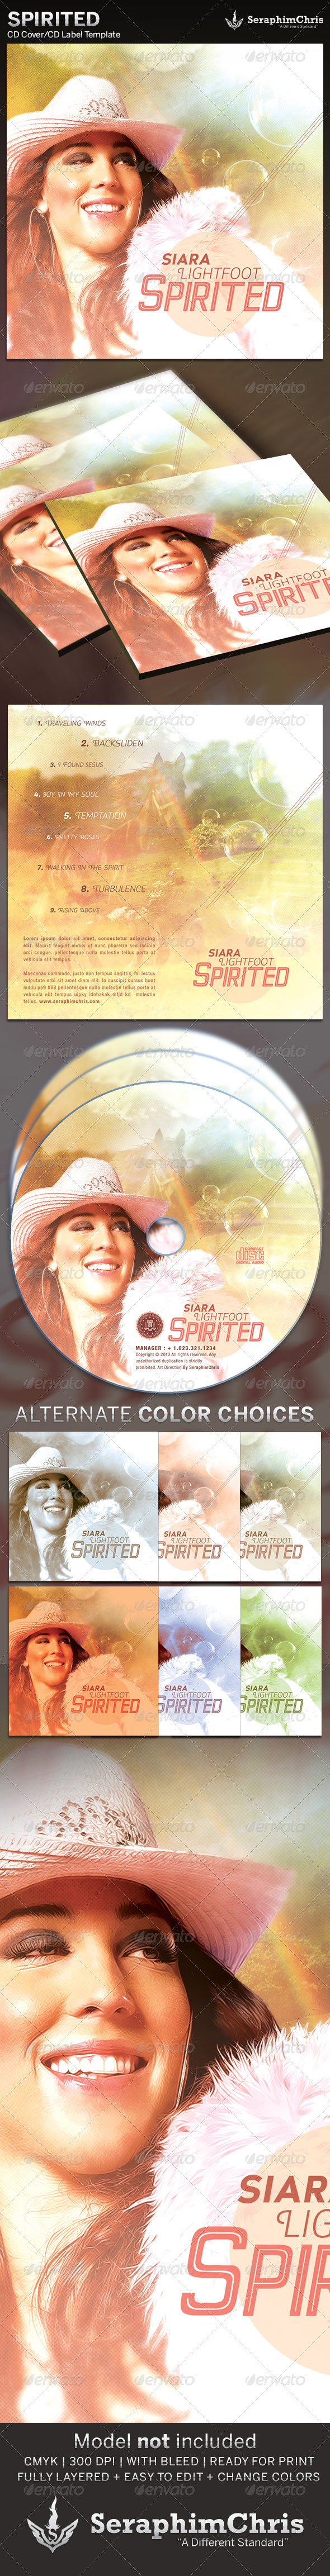 Spirited: CD Cover Artwork Template - CD & DVD Artwork Print Templates